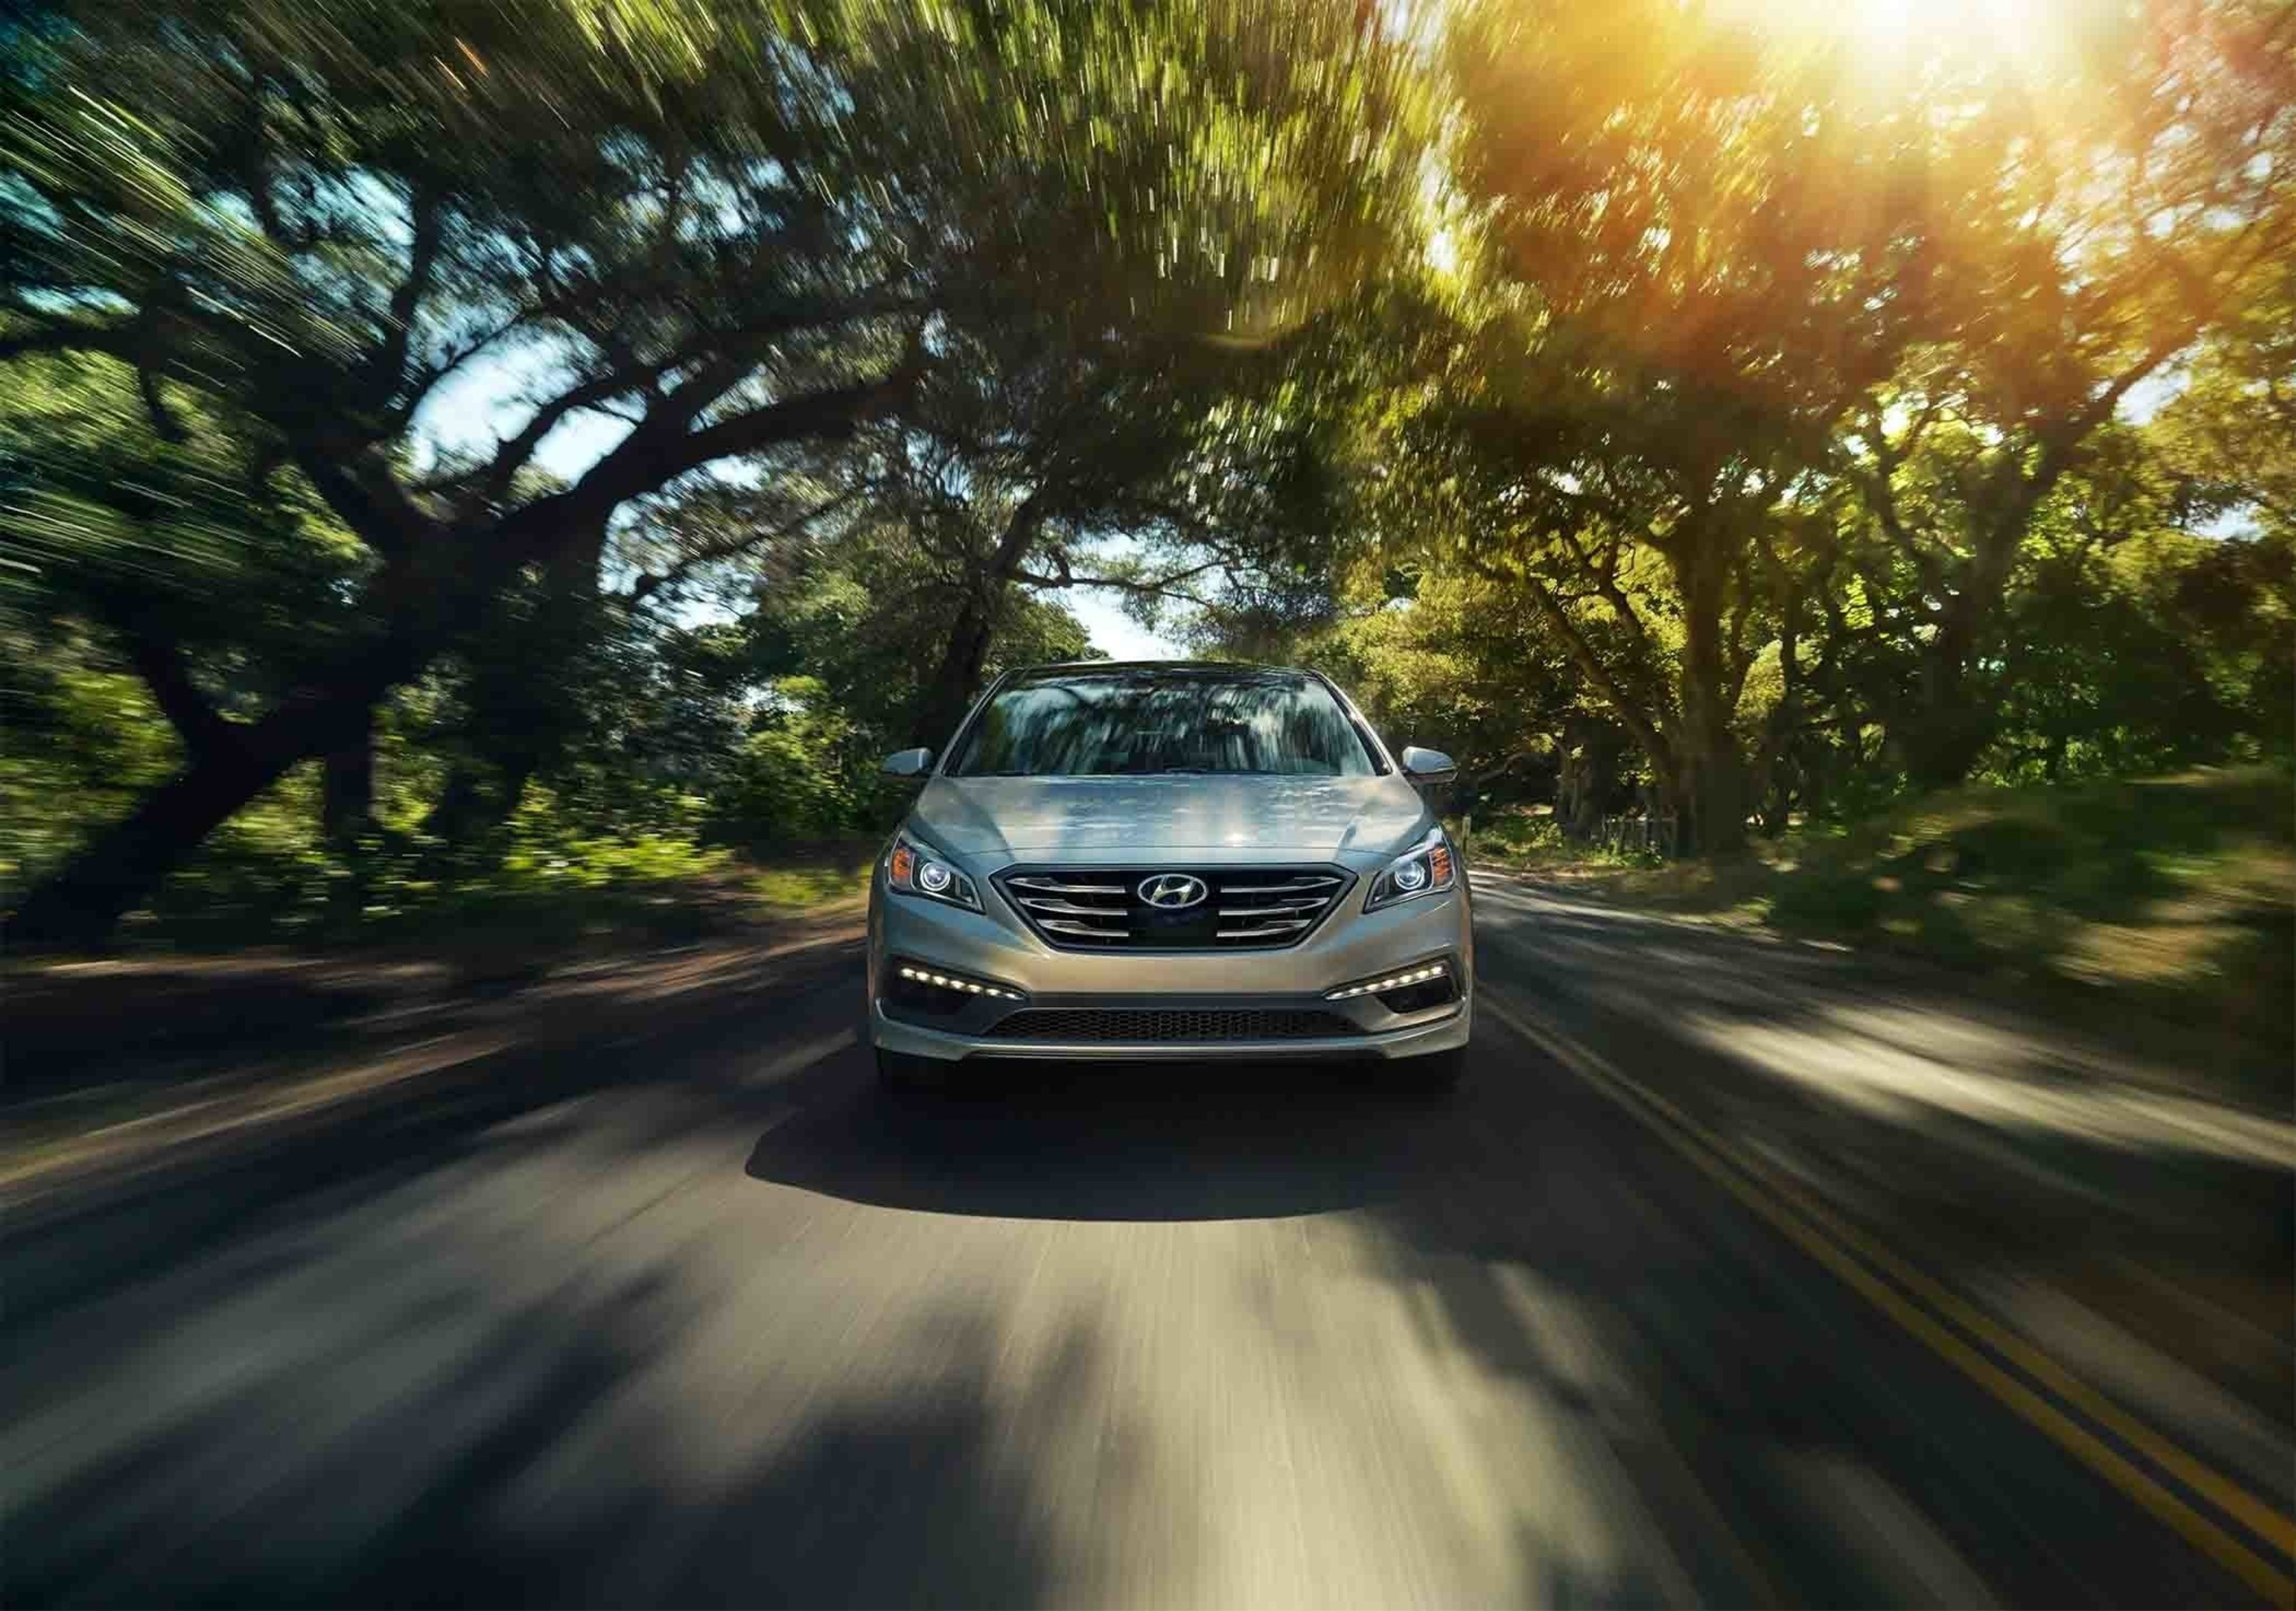 2017 HYUNDAI SONATA ADDS DYNAMIC BENDING LIGHT TO A BEVY OF AVAILABLE SAFETY FEATURES